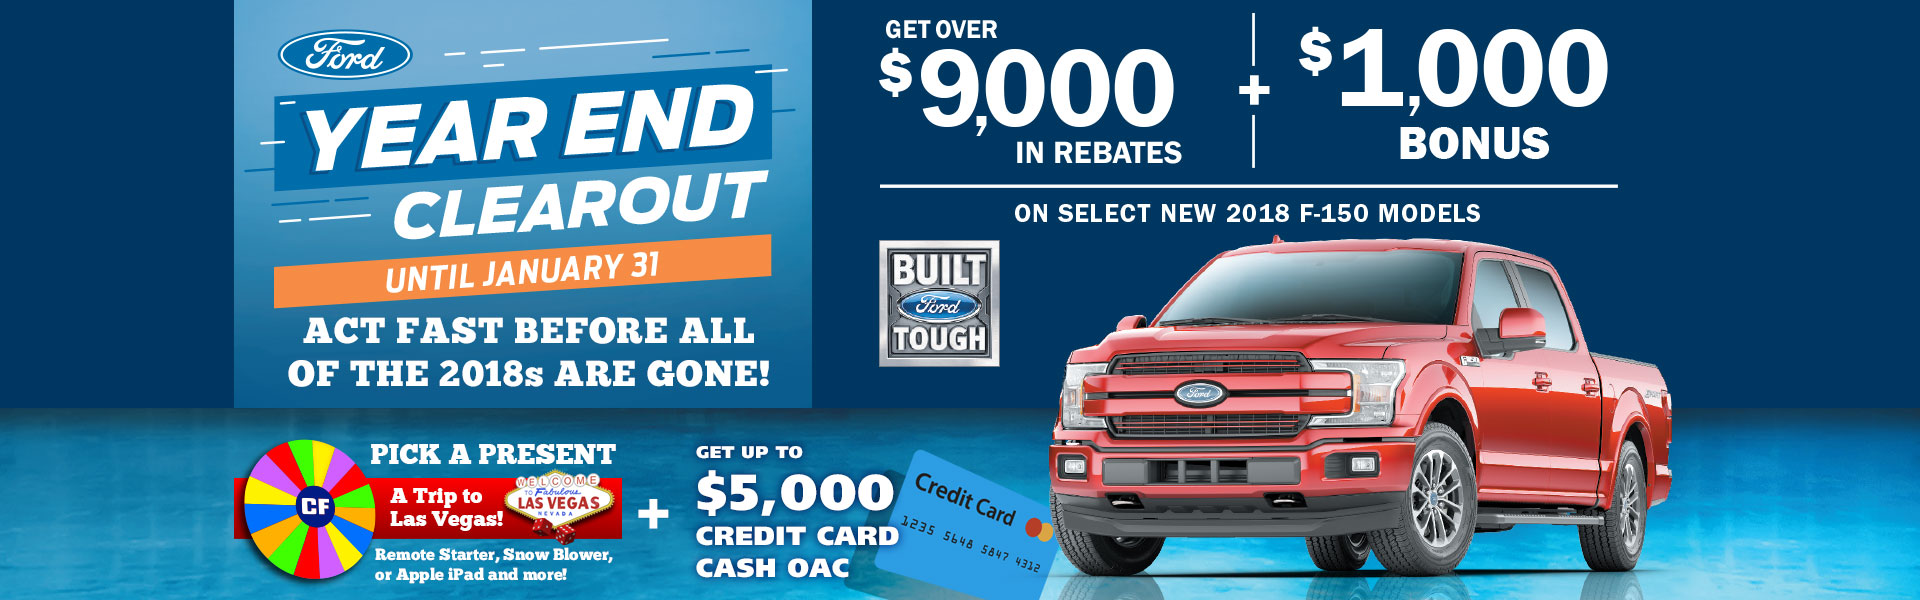 Edmonton Ford Year End Clearout Event F-150 Truck Sales